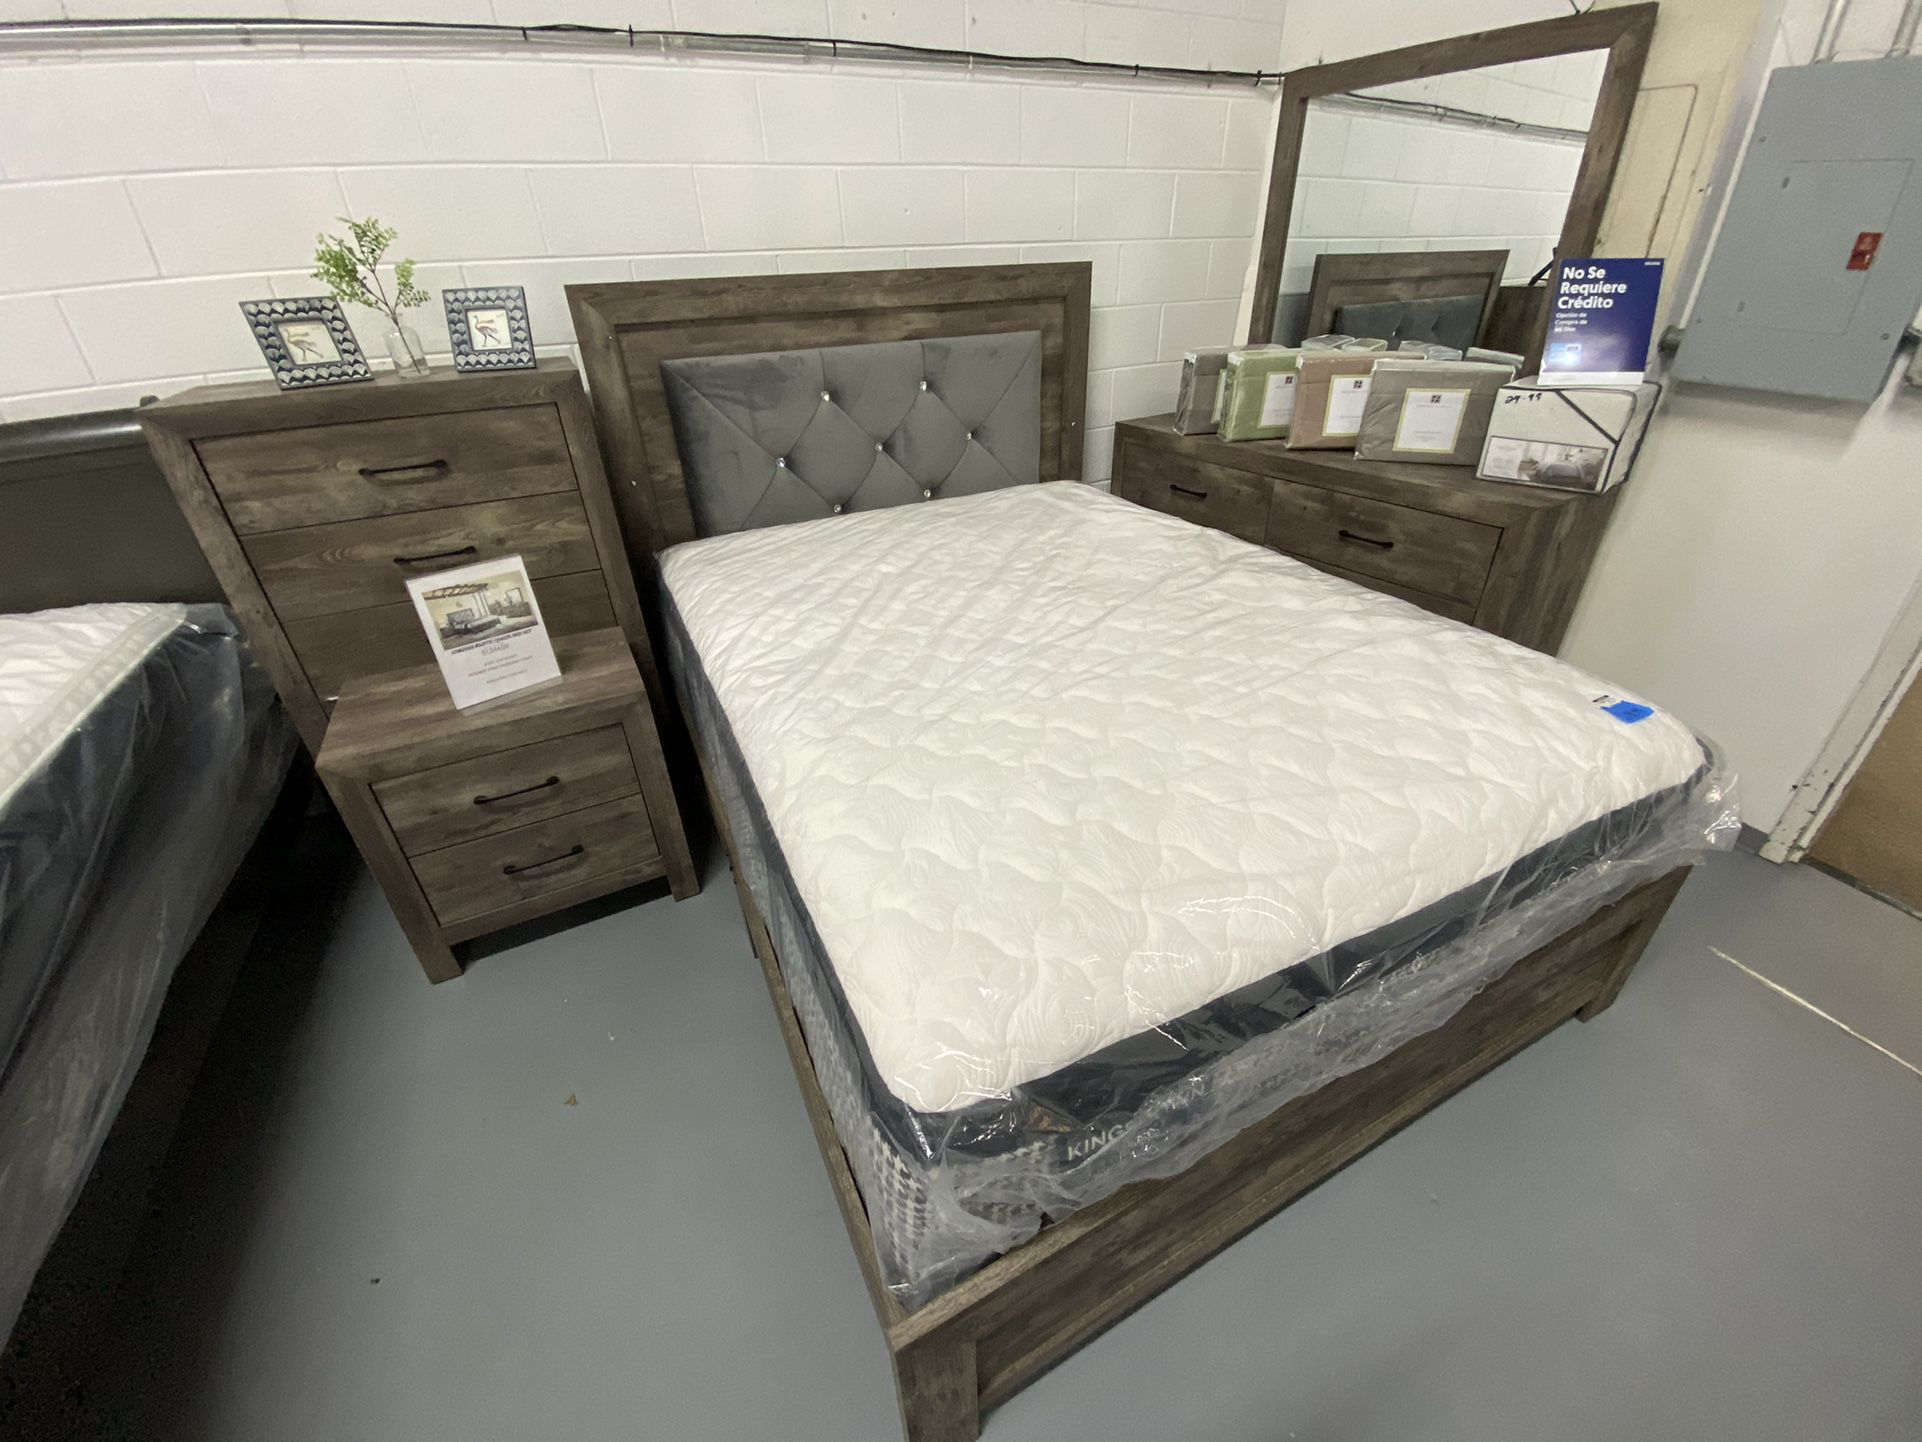 Bedroom Sets On Sale today- Only $52 Down - Take It home Today Ask Eli